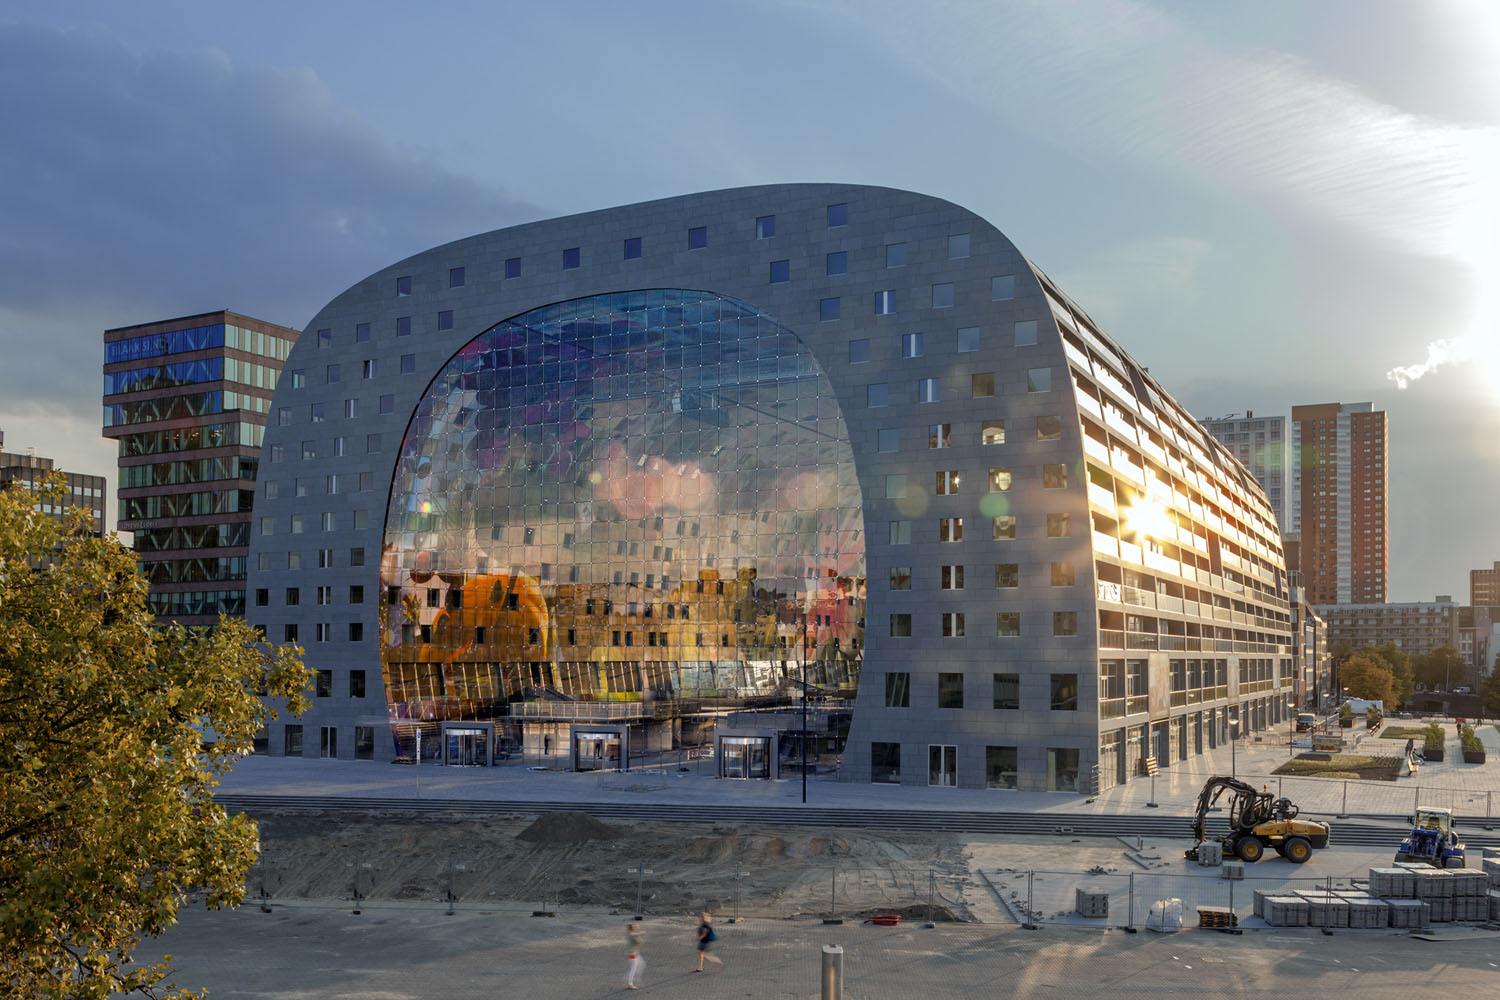 mm_Markthal Rotterdam design by MVRDV_01